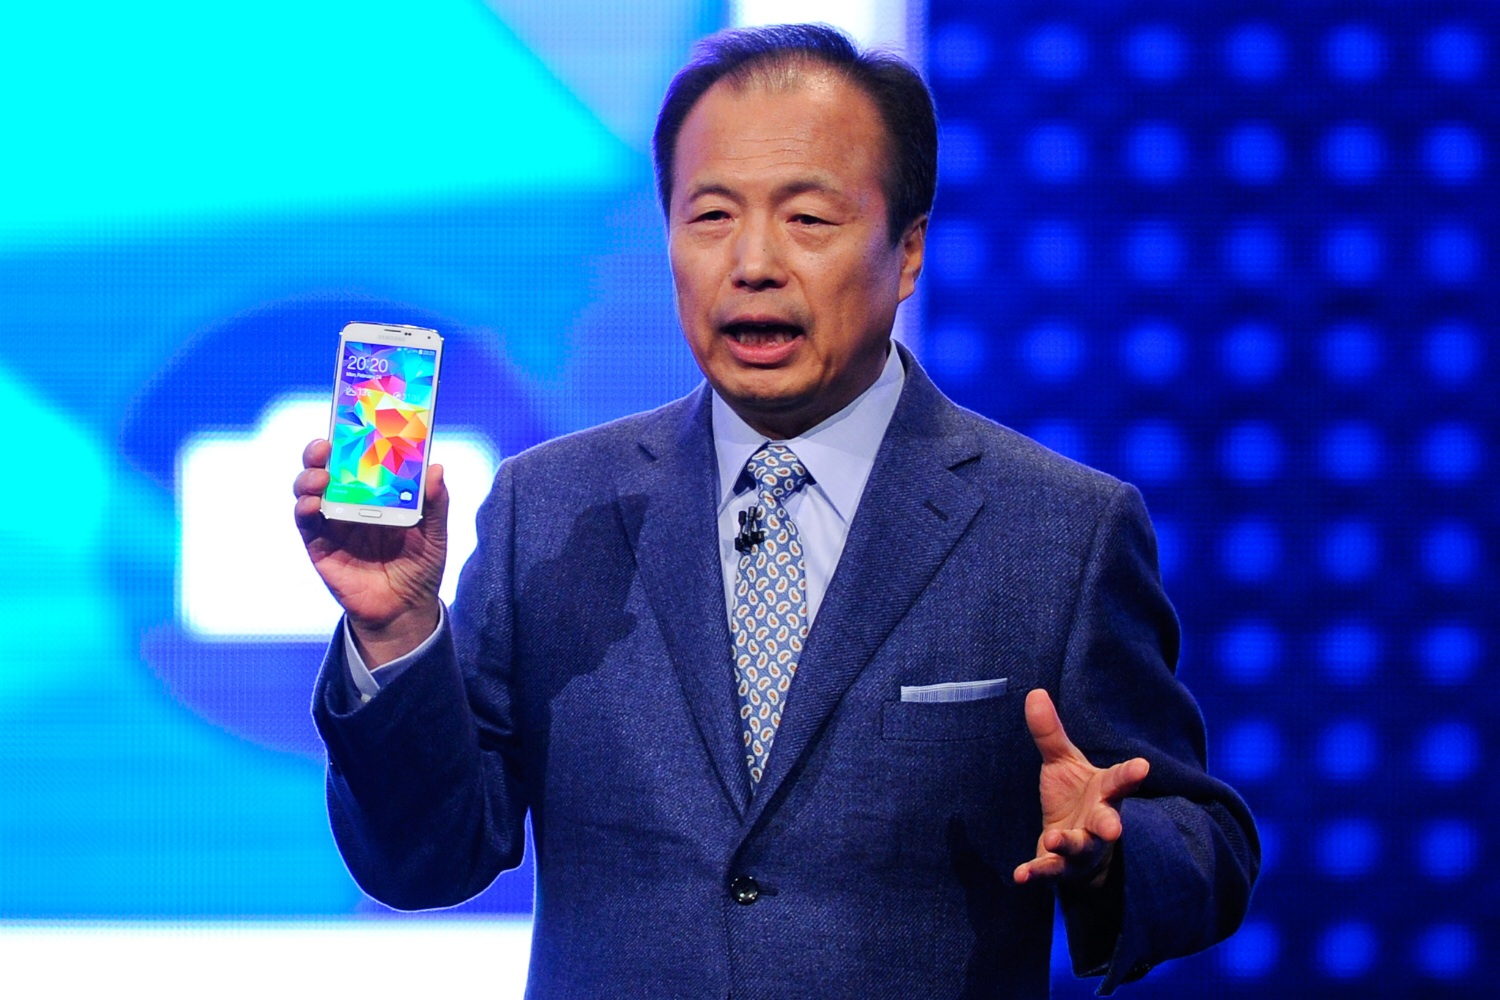 Samsung president and CEO J.K. Shin announces the Galaxy S5 smartphone at Mobile World Congress in Barcelona on February 24, 2014